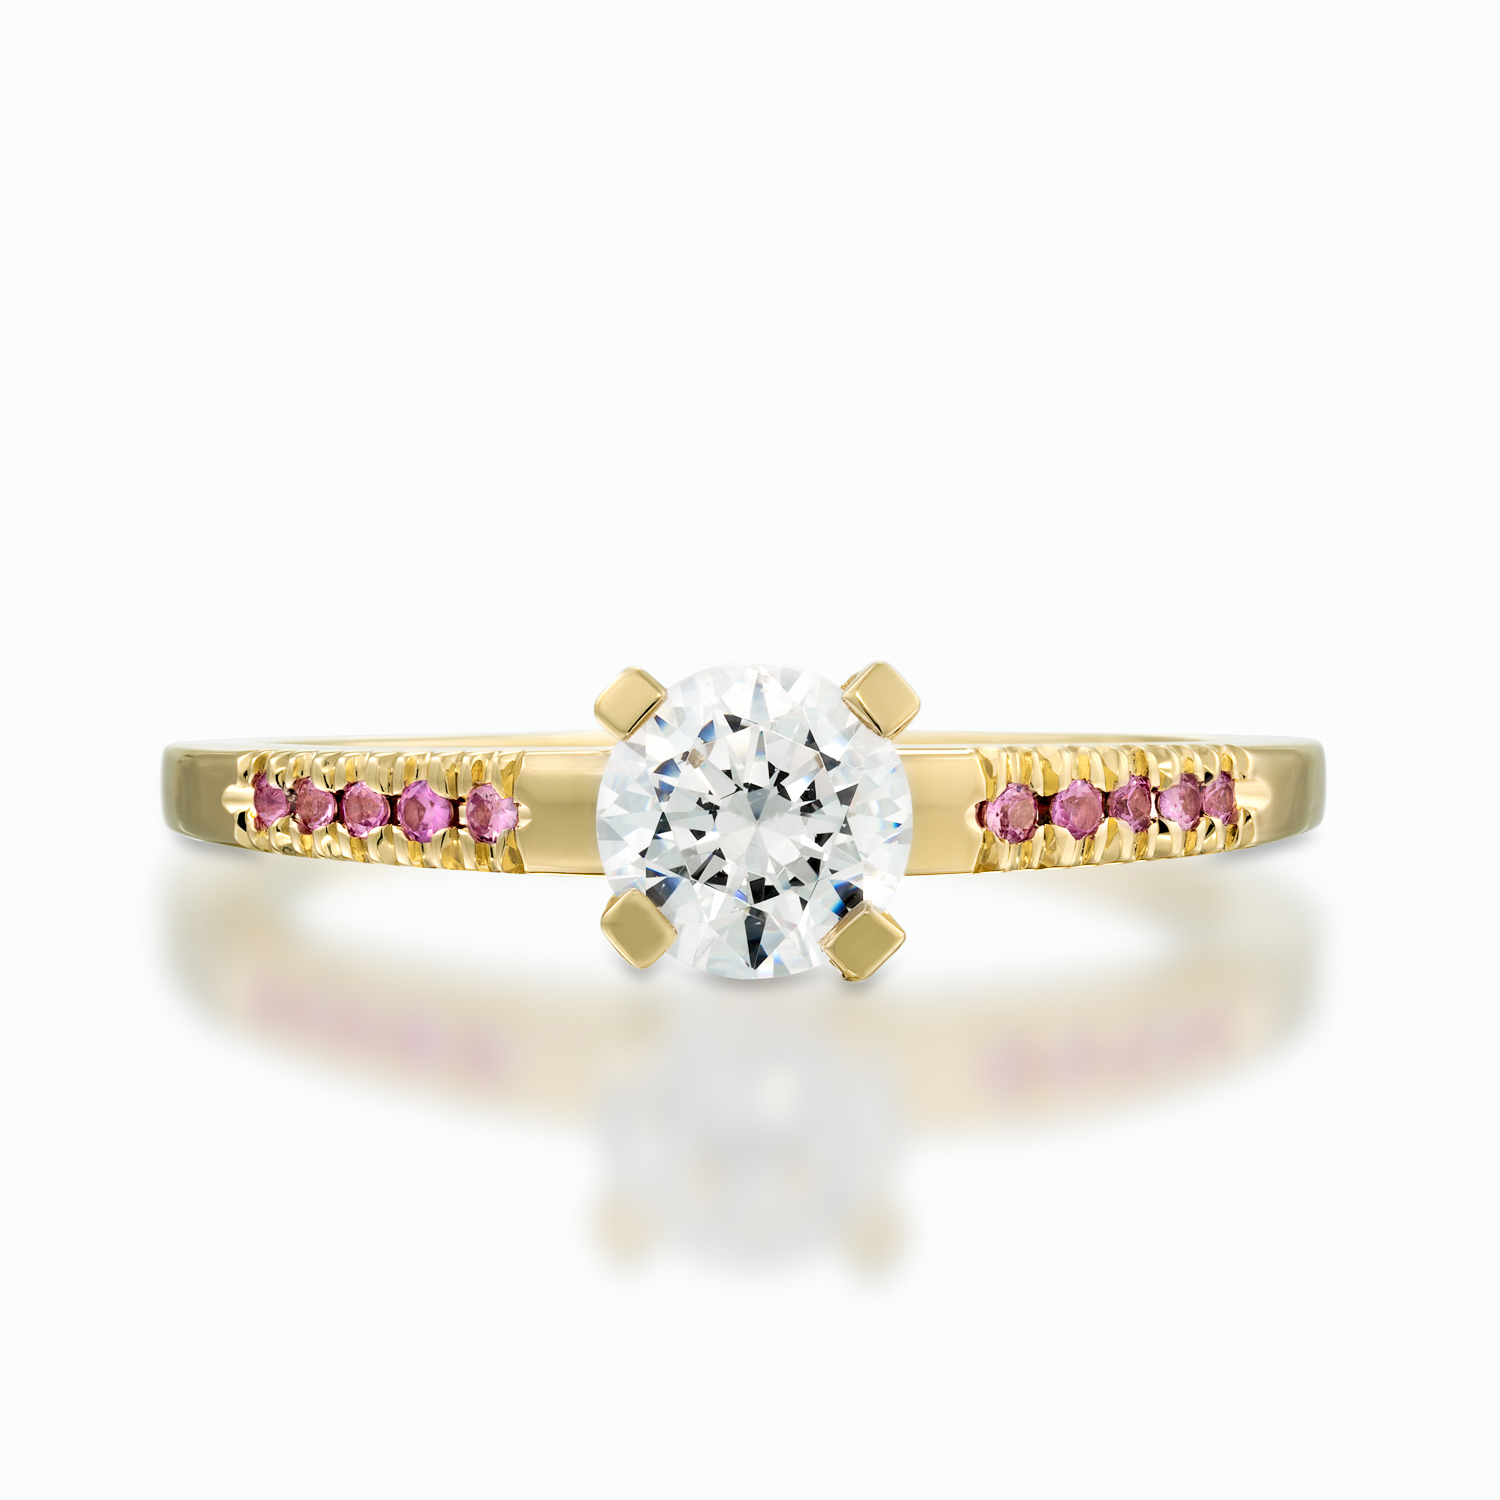 Classic yet unique solitaire engagement ring with a center setting of a diamond accented by pink sapphires on the sides of the band. D: 0.50-0.60 ct. PS: 0.06 ct.